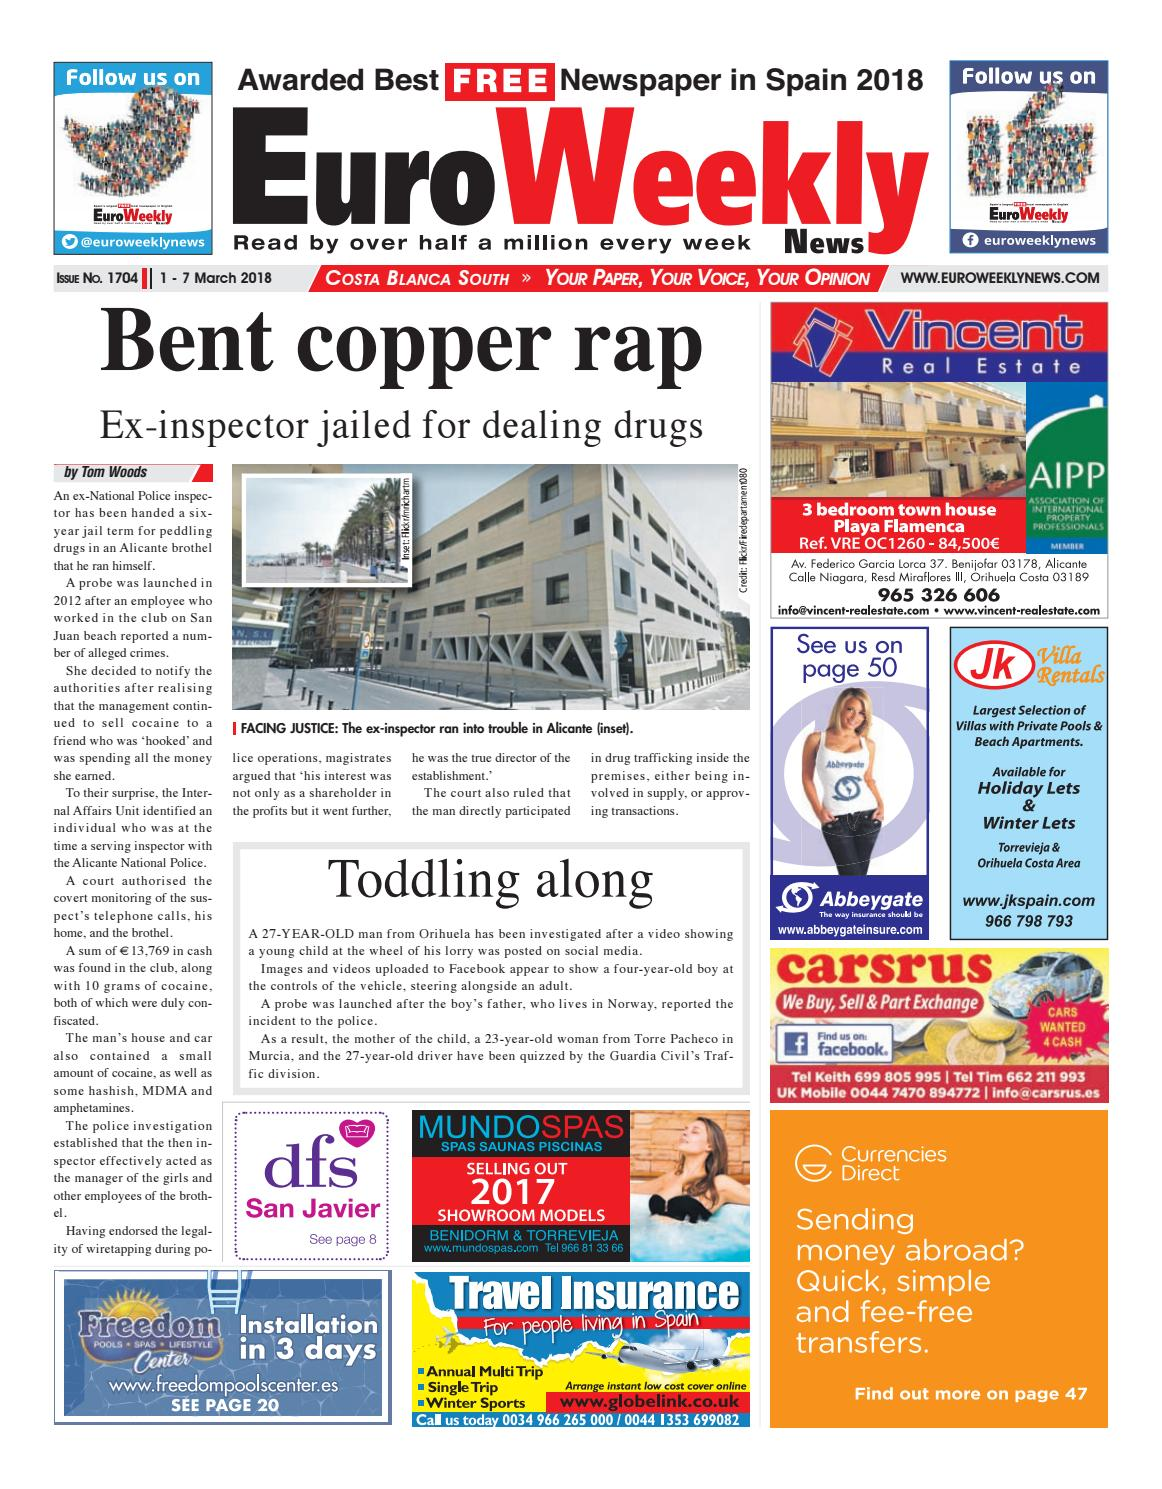 bde538268b033 Euro Weekly News - Costa Blanca South 1 - 7 March 2018 Issue 1704 by Euro  Weekly News Media S.A. - issuu